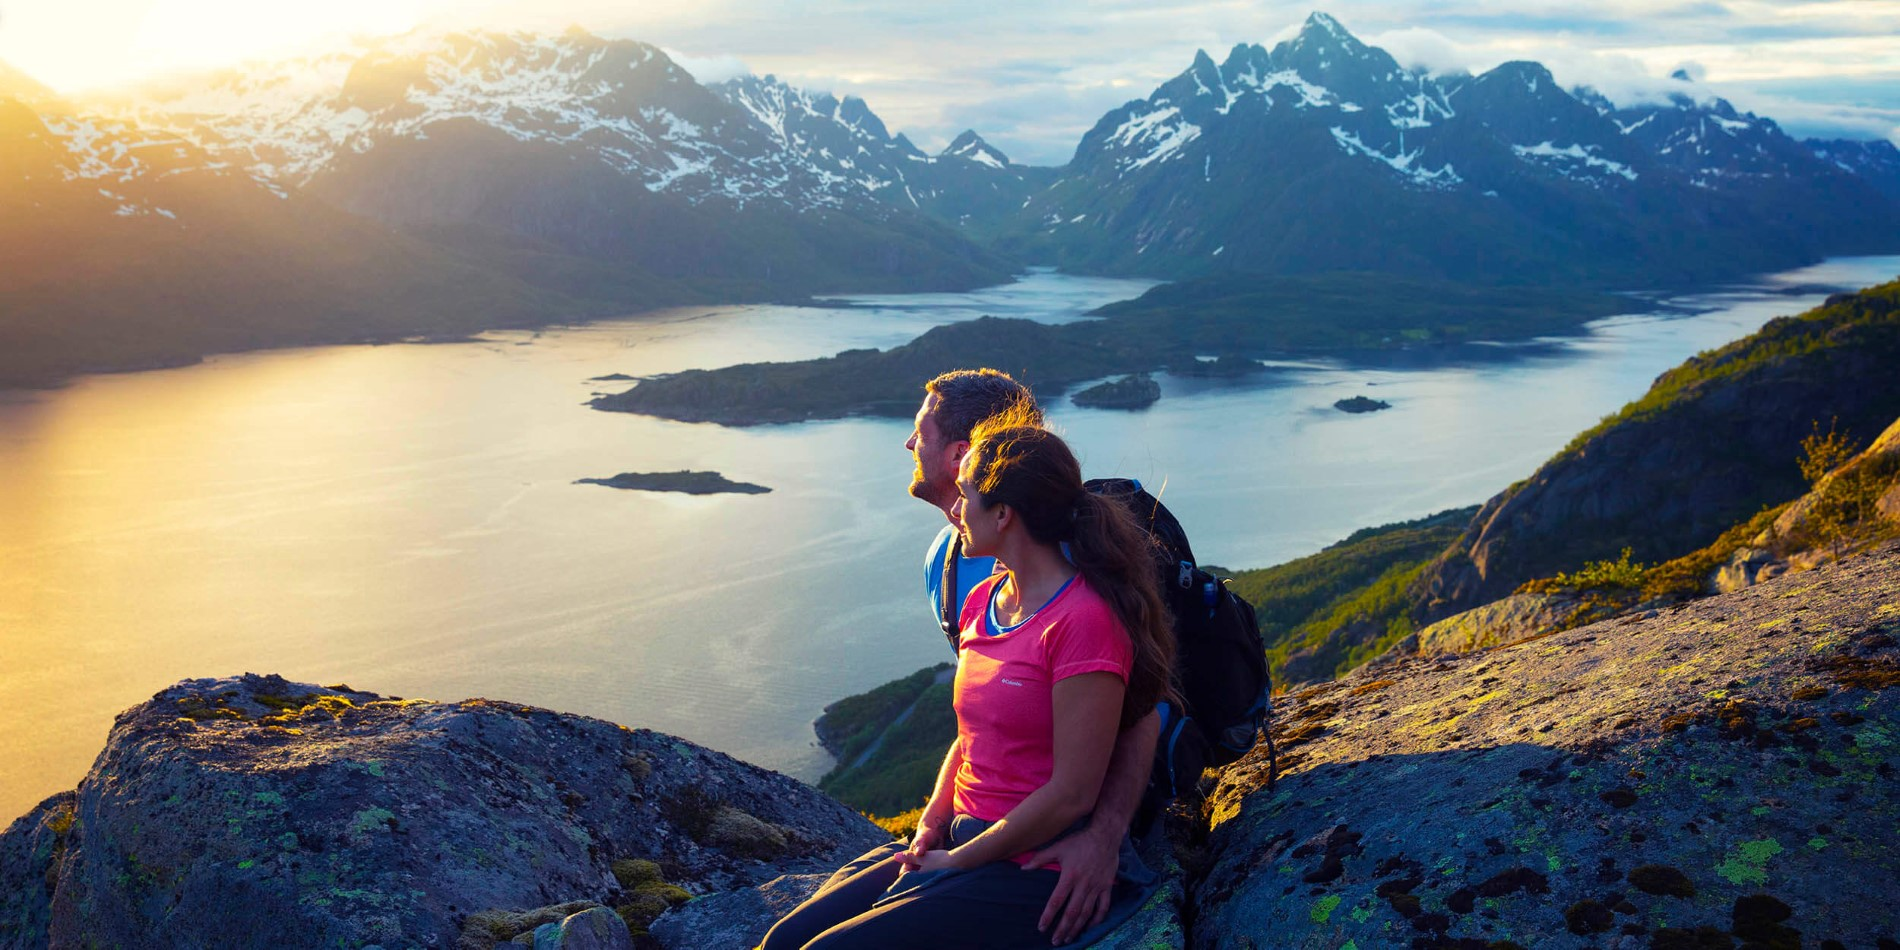 Lofoten's jagged mountain tops are perfect for great hikes and stunning views of Norway's landscape